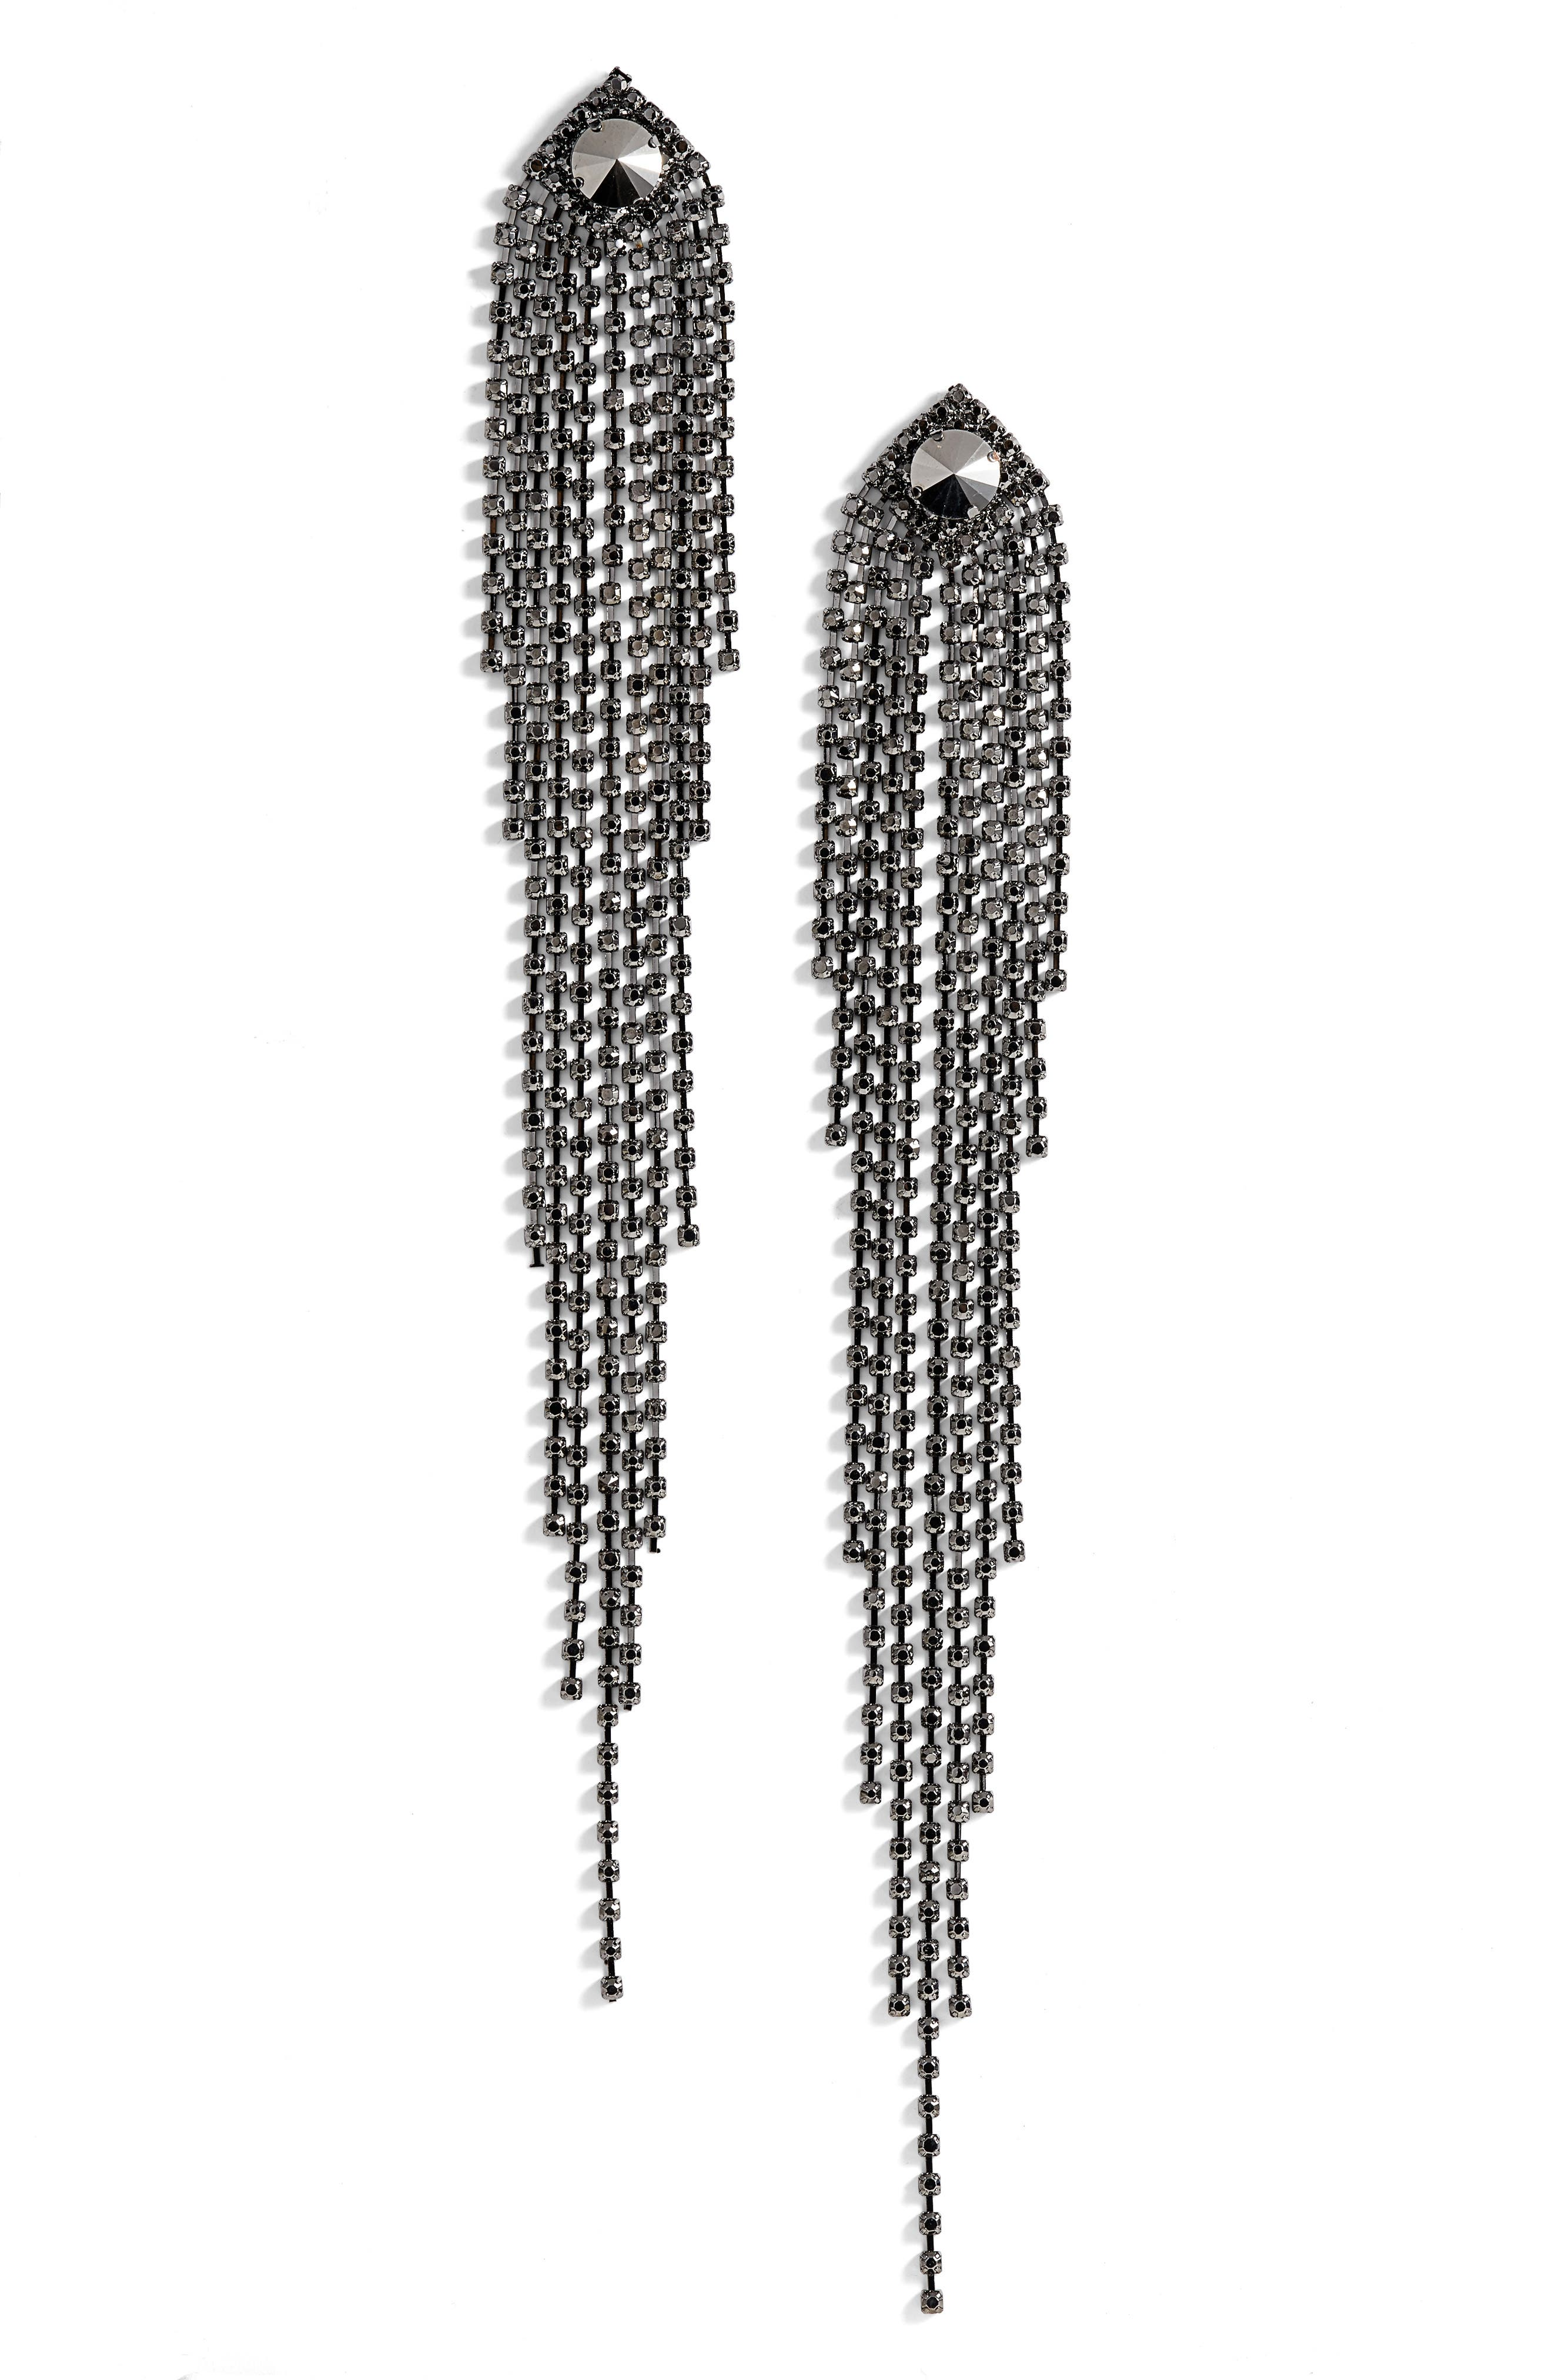 Natasha Couture Drama Crystal Shoulder Duster Earrings